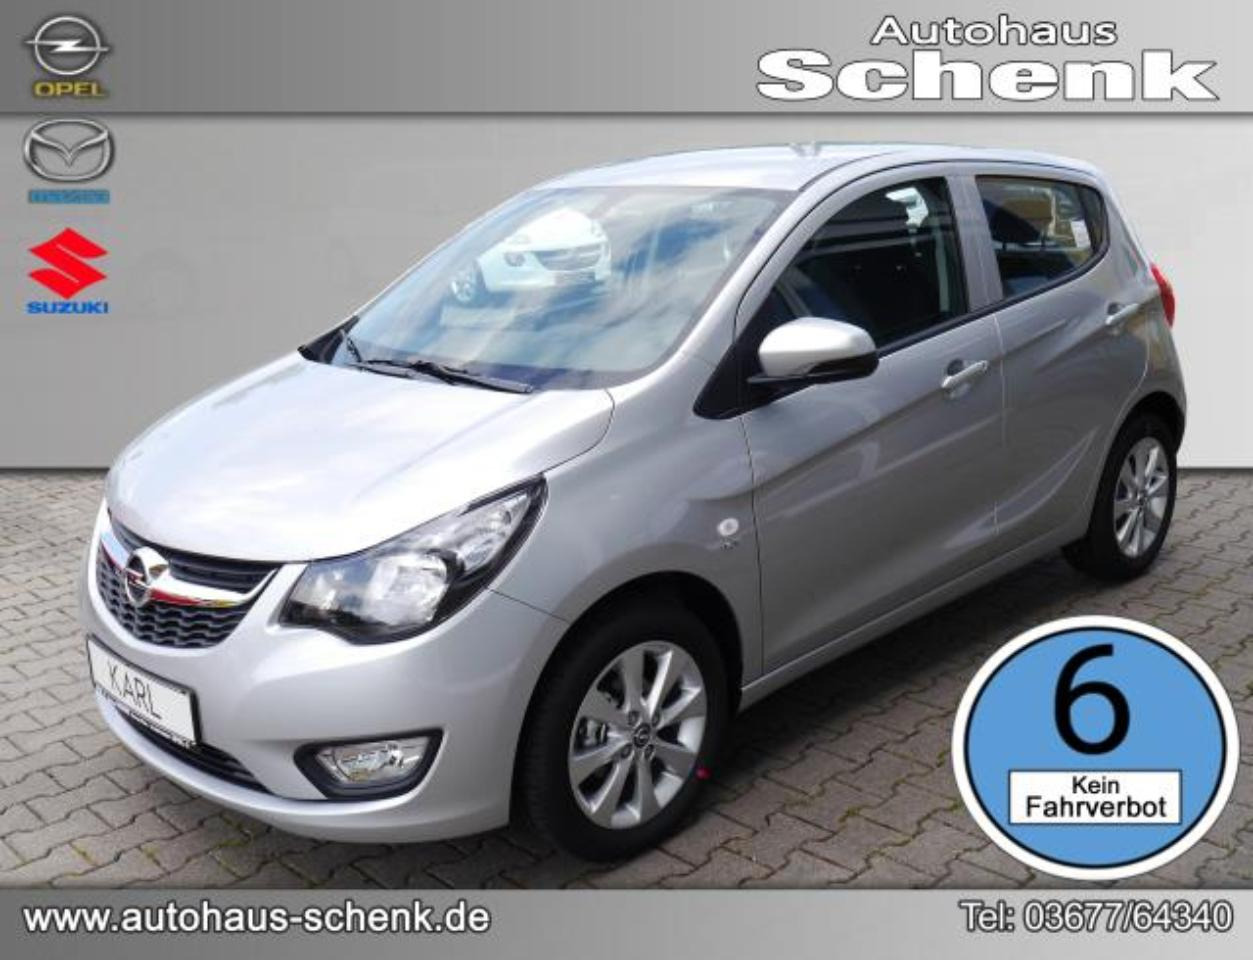 Opel Karl EXCITE 1.0 54 KW (73 PS) (MANUELLES 5-GANG-GETRIEB